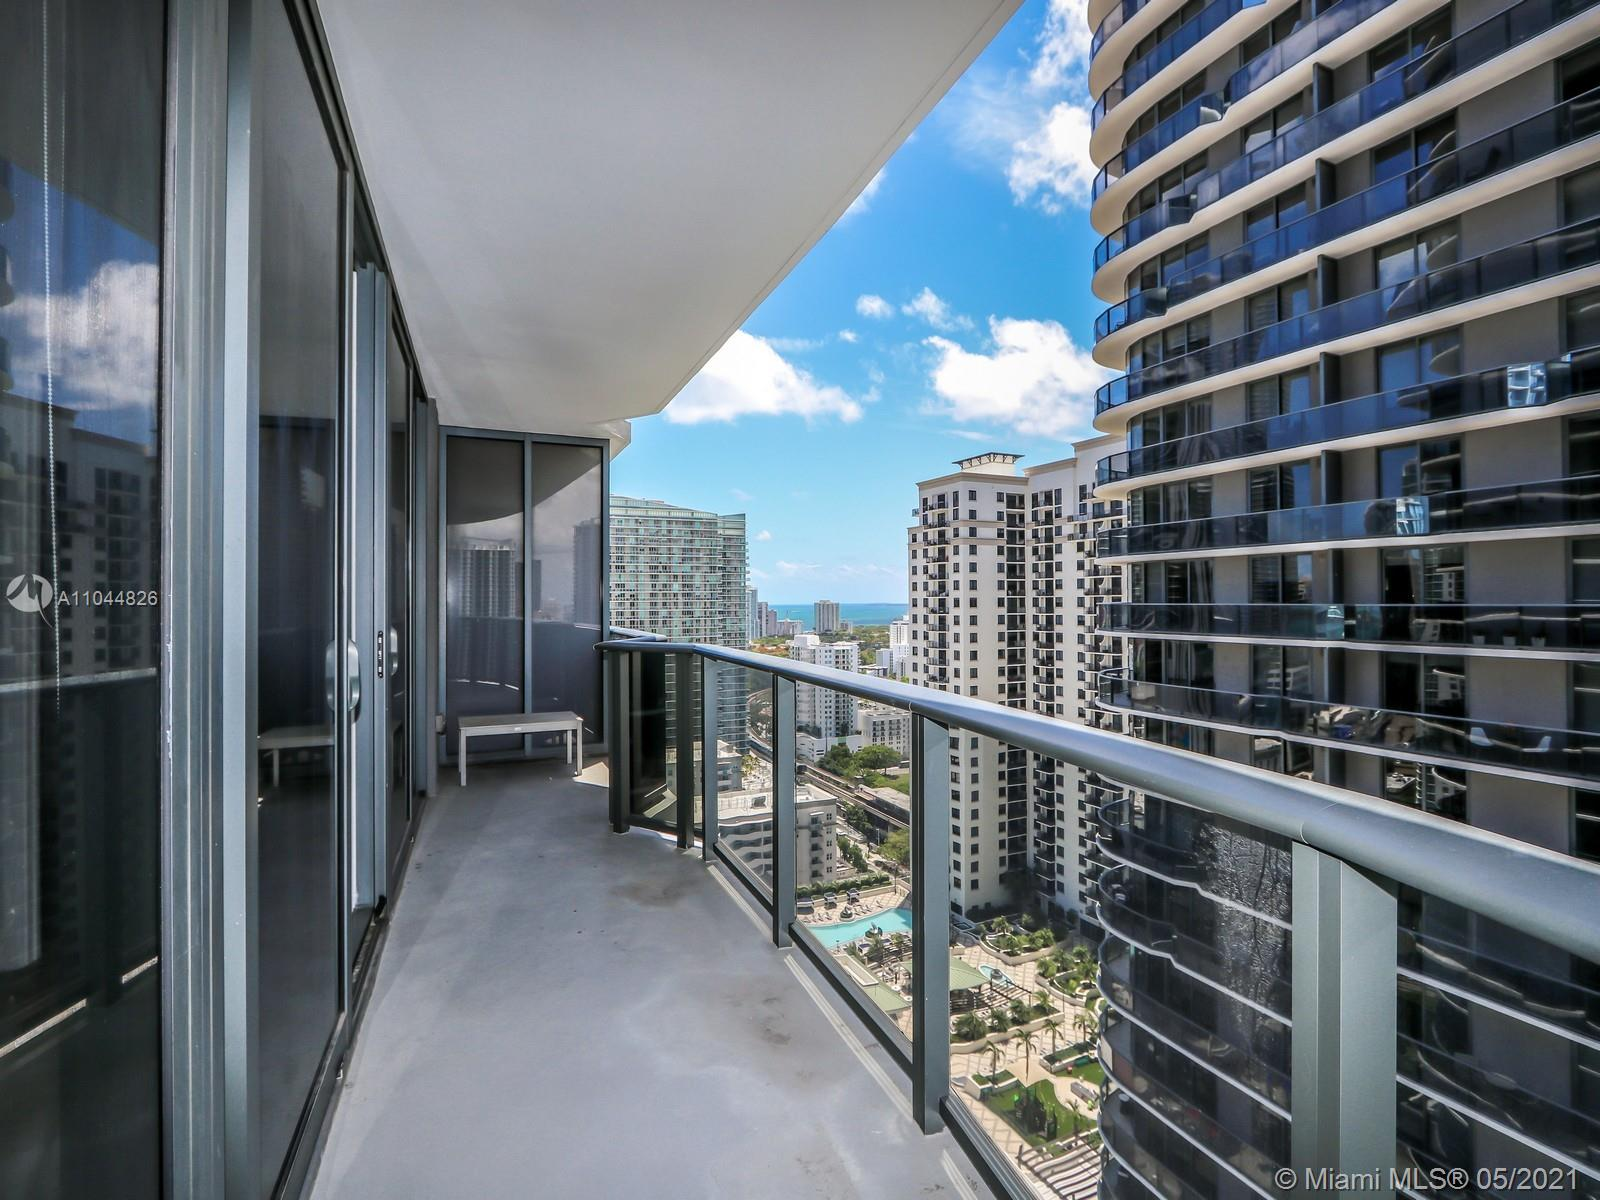 BEST DEAL IN THE BUILDING!! Corner unit with Stunning views from the 27th floor in the heart of Brickell. Brickell Heights East is a beautiful building with all the amenities imaginable. This 2 bedroom 2 bathroom corner apartment has a huge wraparound balcony which has breathtaking views of the City, some Water Views and so much more. This apartment's windows are from floor to ceiling allowing you the ability to have the beautiful views from all areas within the apartment. It's simply an amazing apartment which is cozy and nice. Look no more!!!